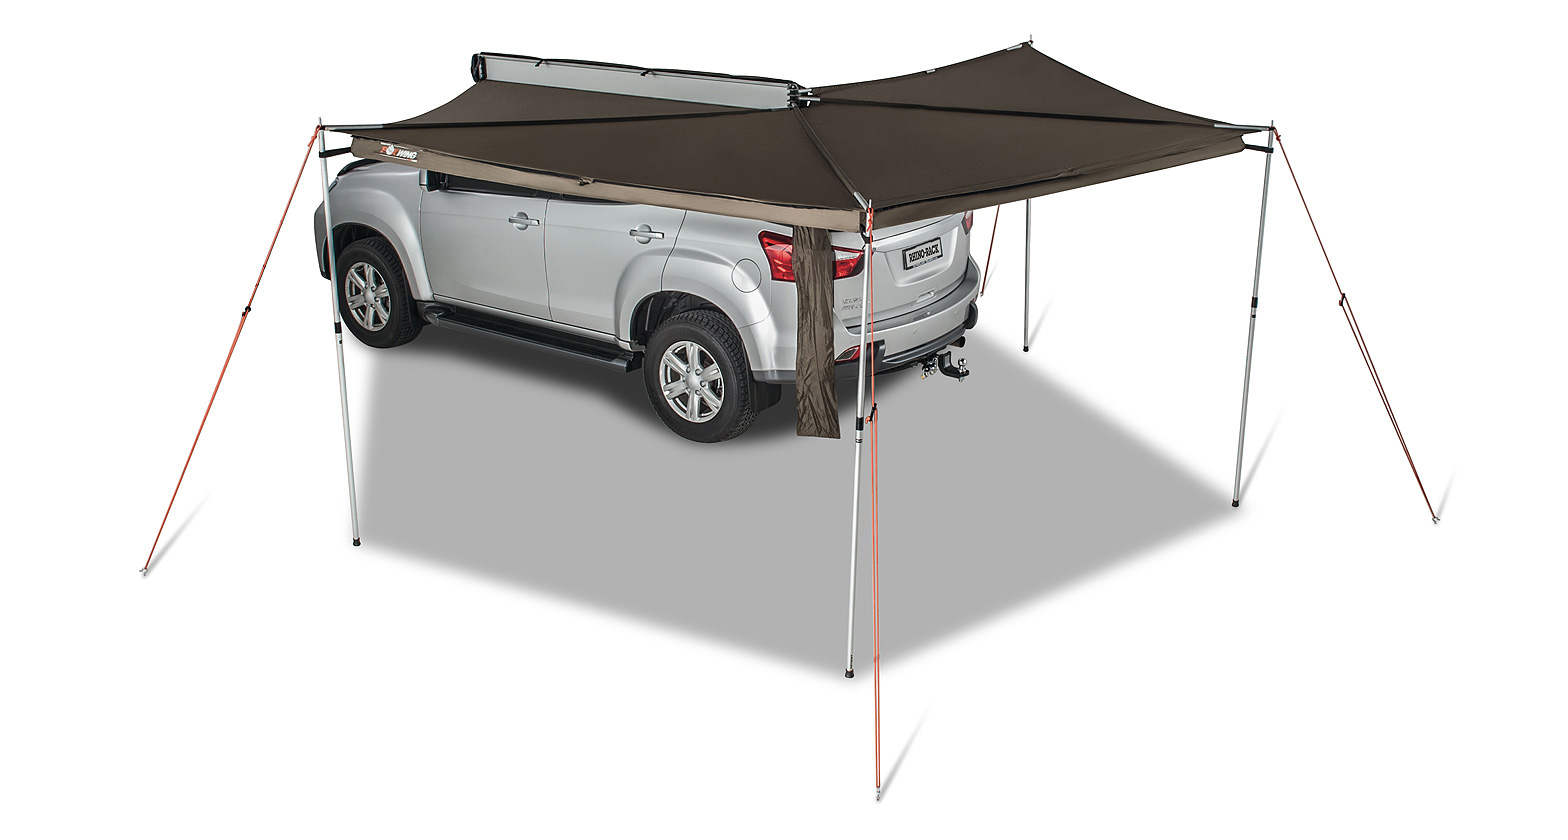 Caddy with hardshell rooftop tent